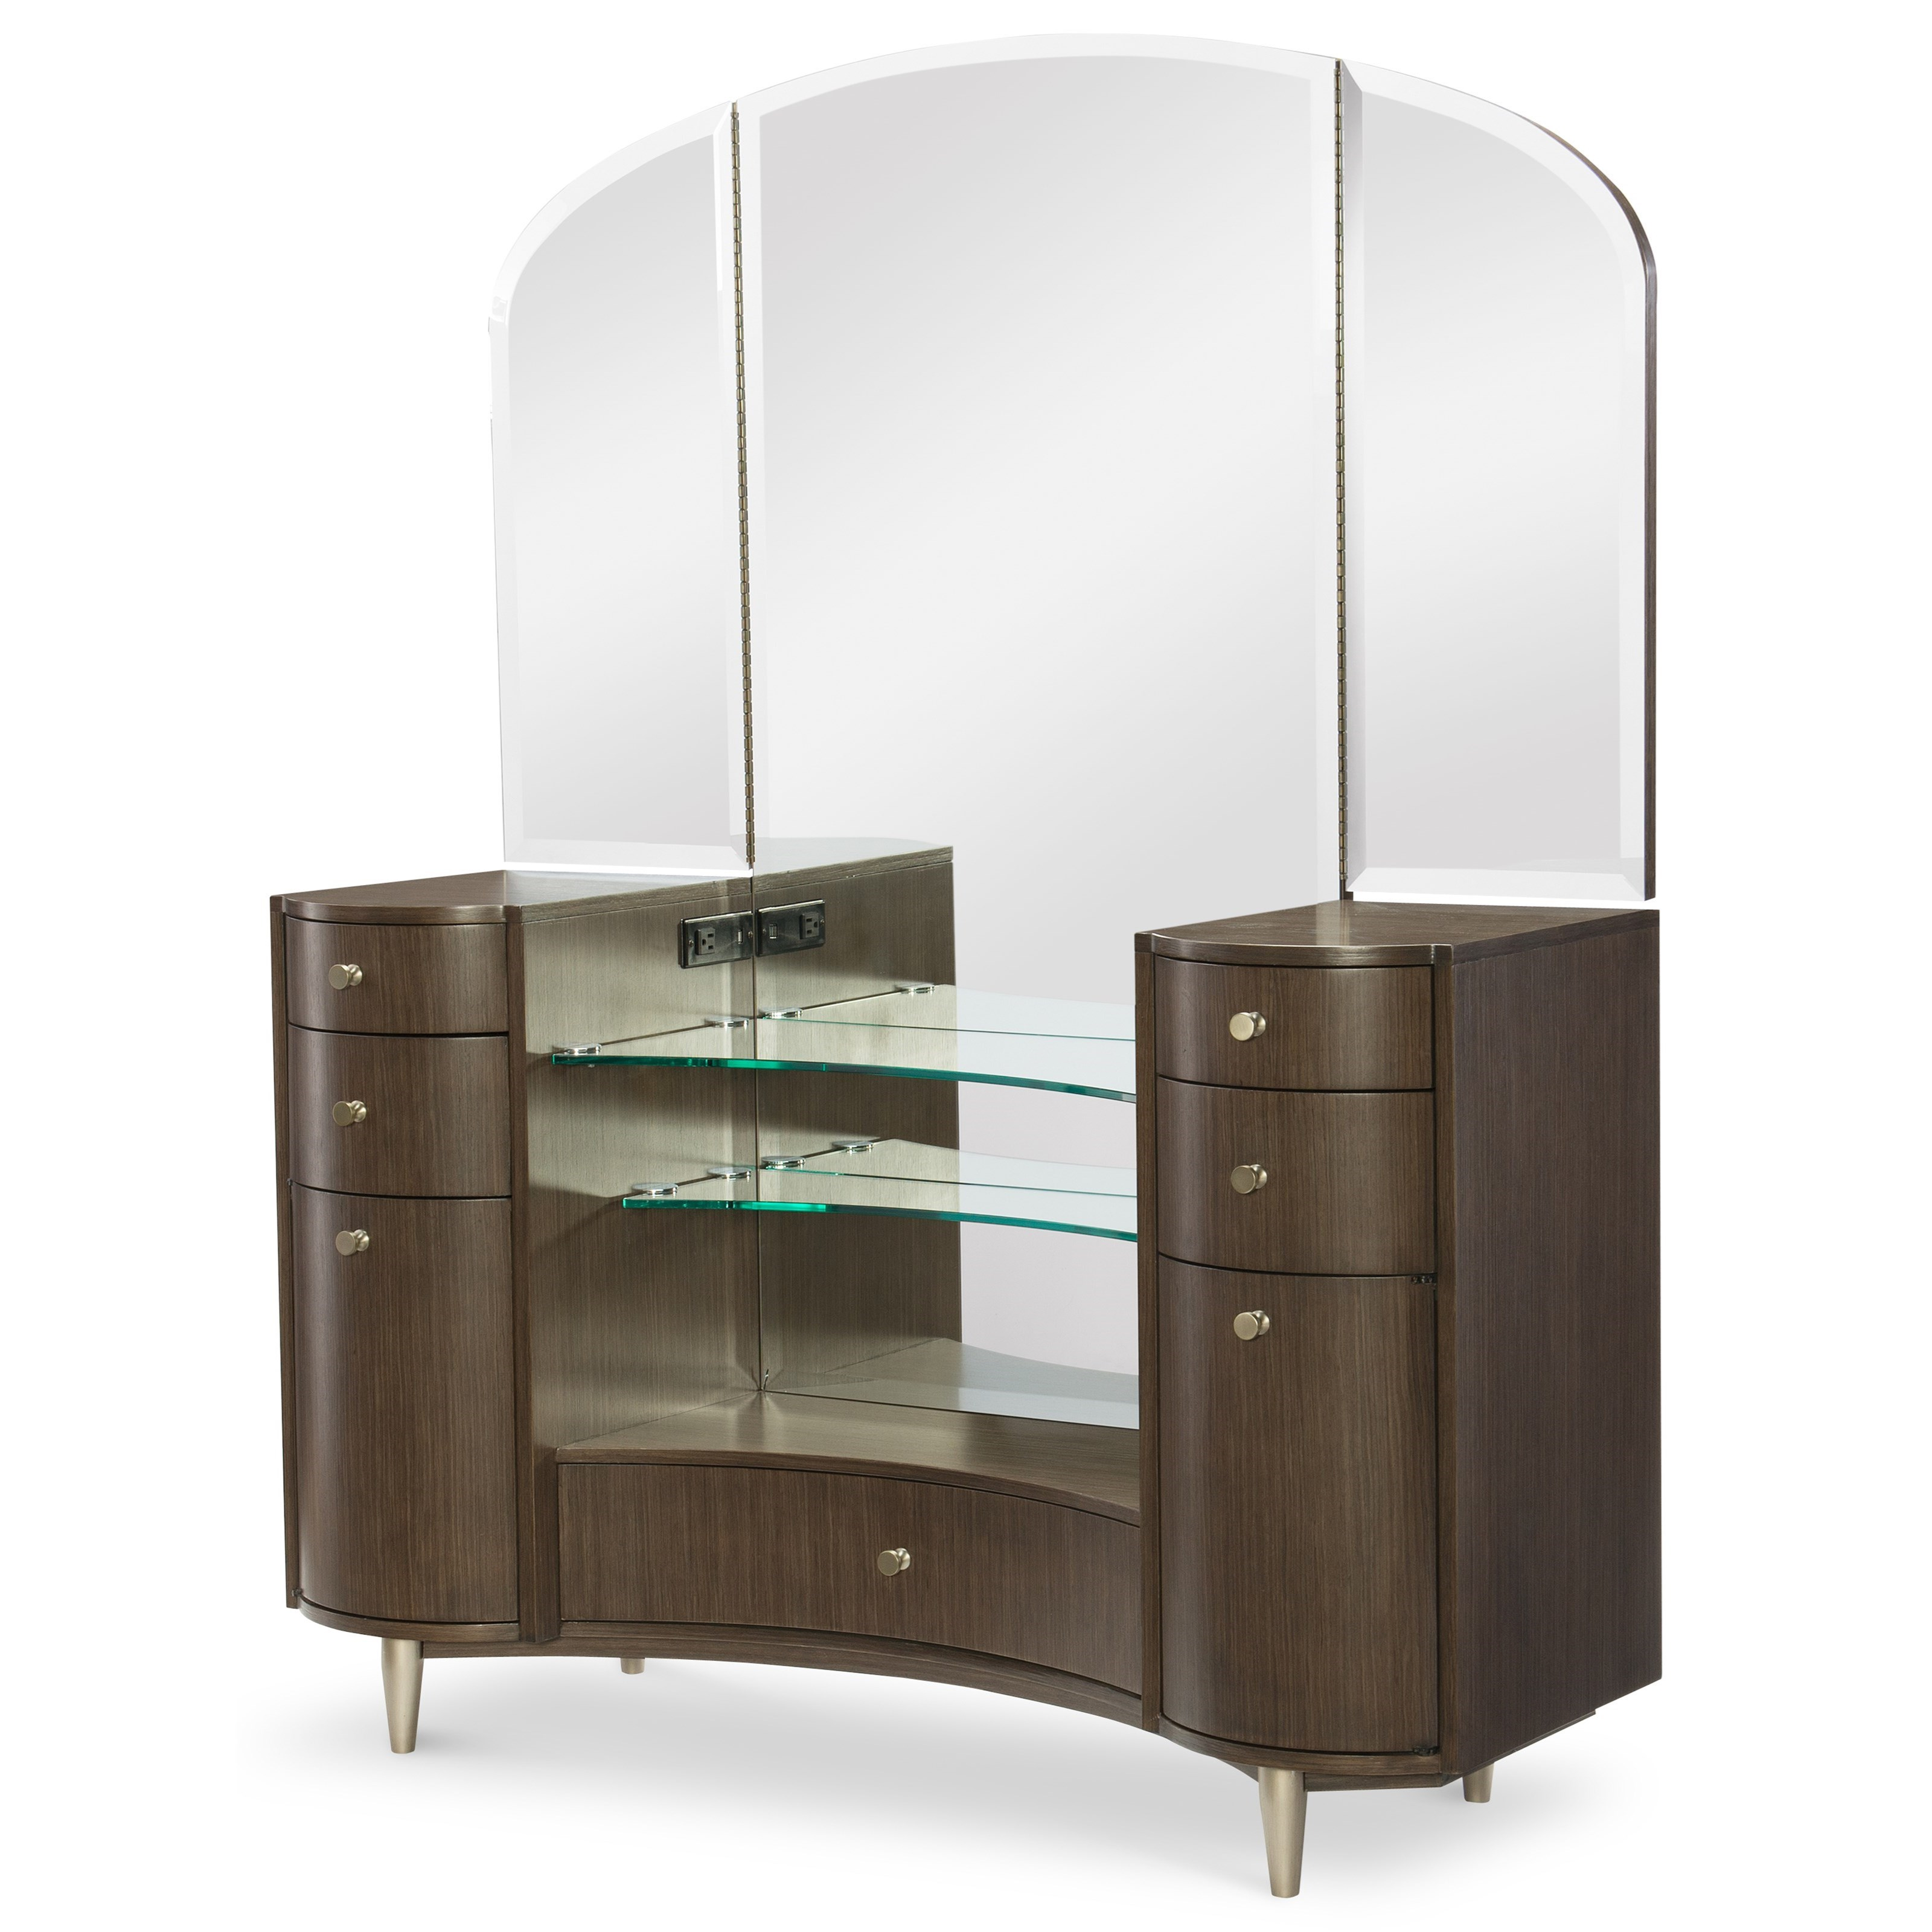 Rachael Ray Home by Legacy Classic Soho Vanity Desk with Mirror - Item Number: 6020-7400+0700